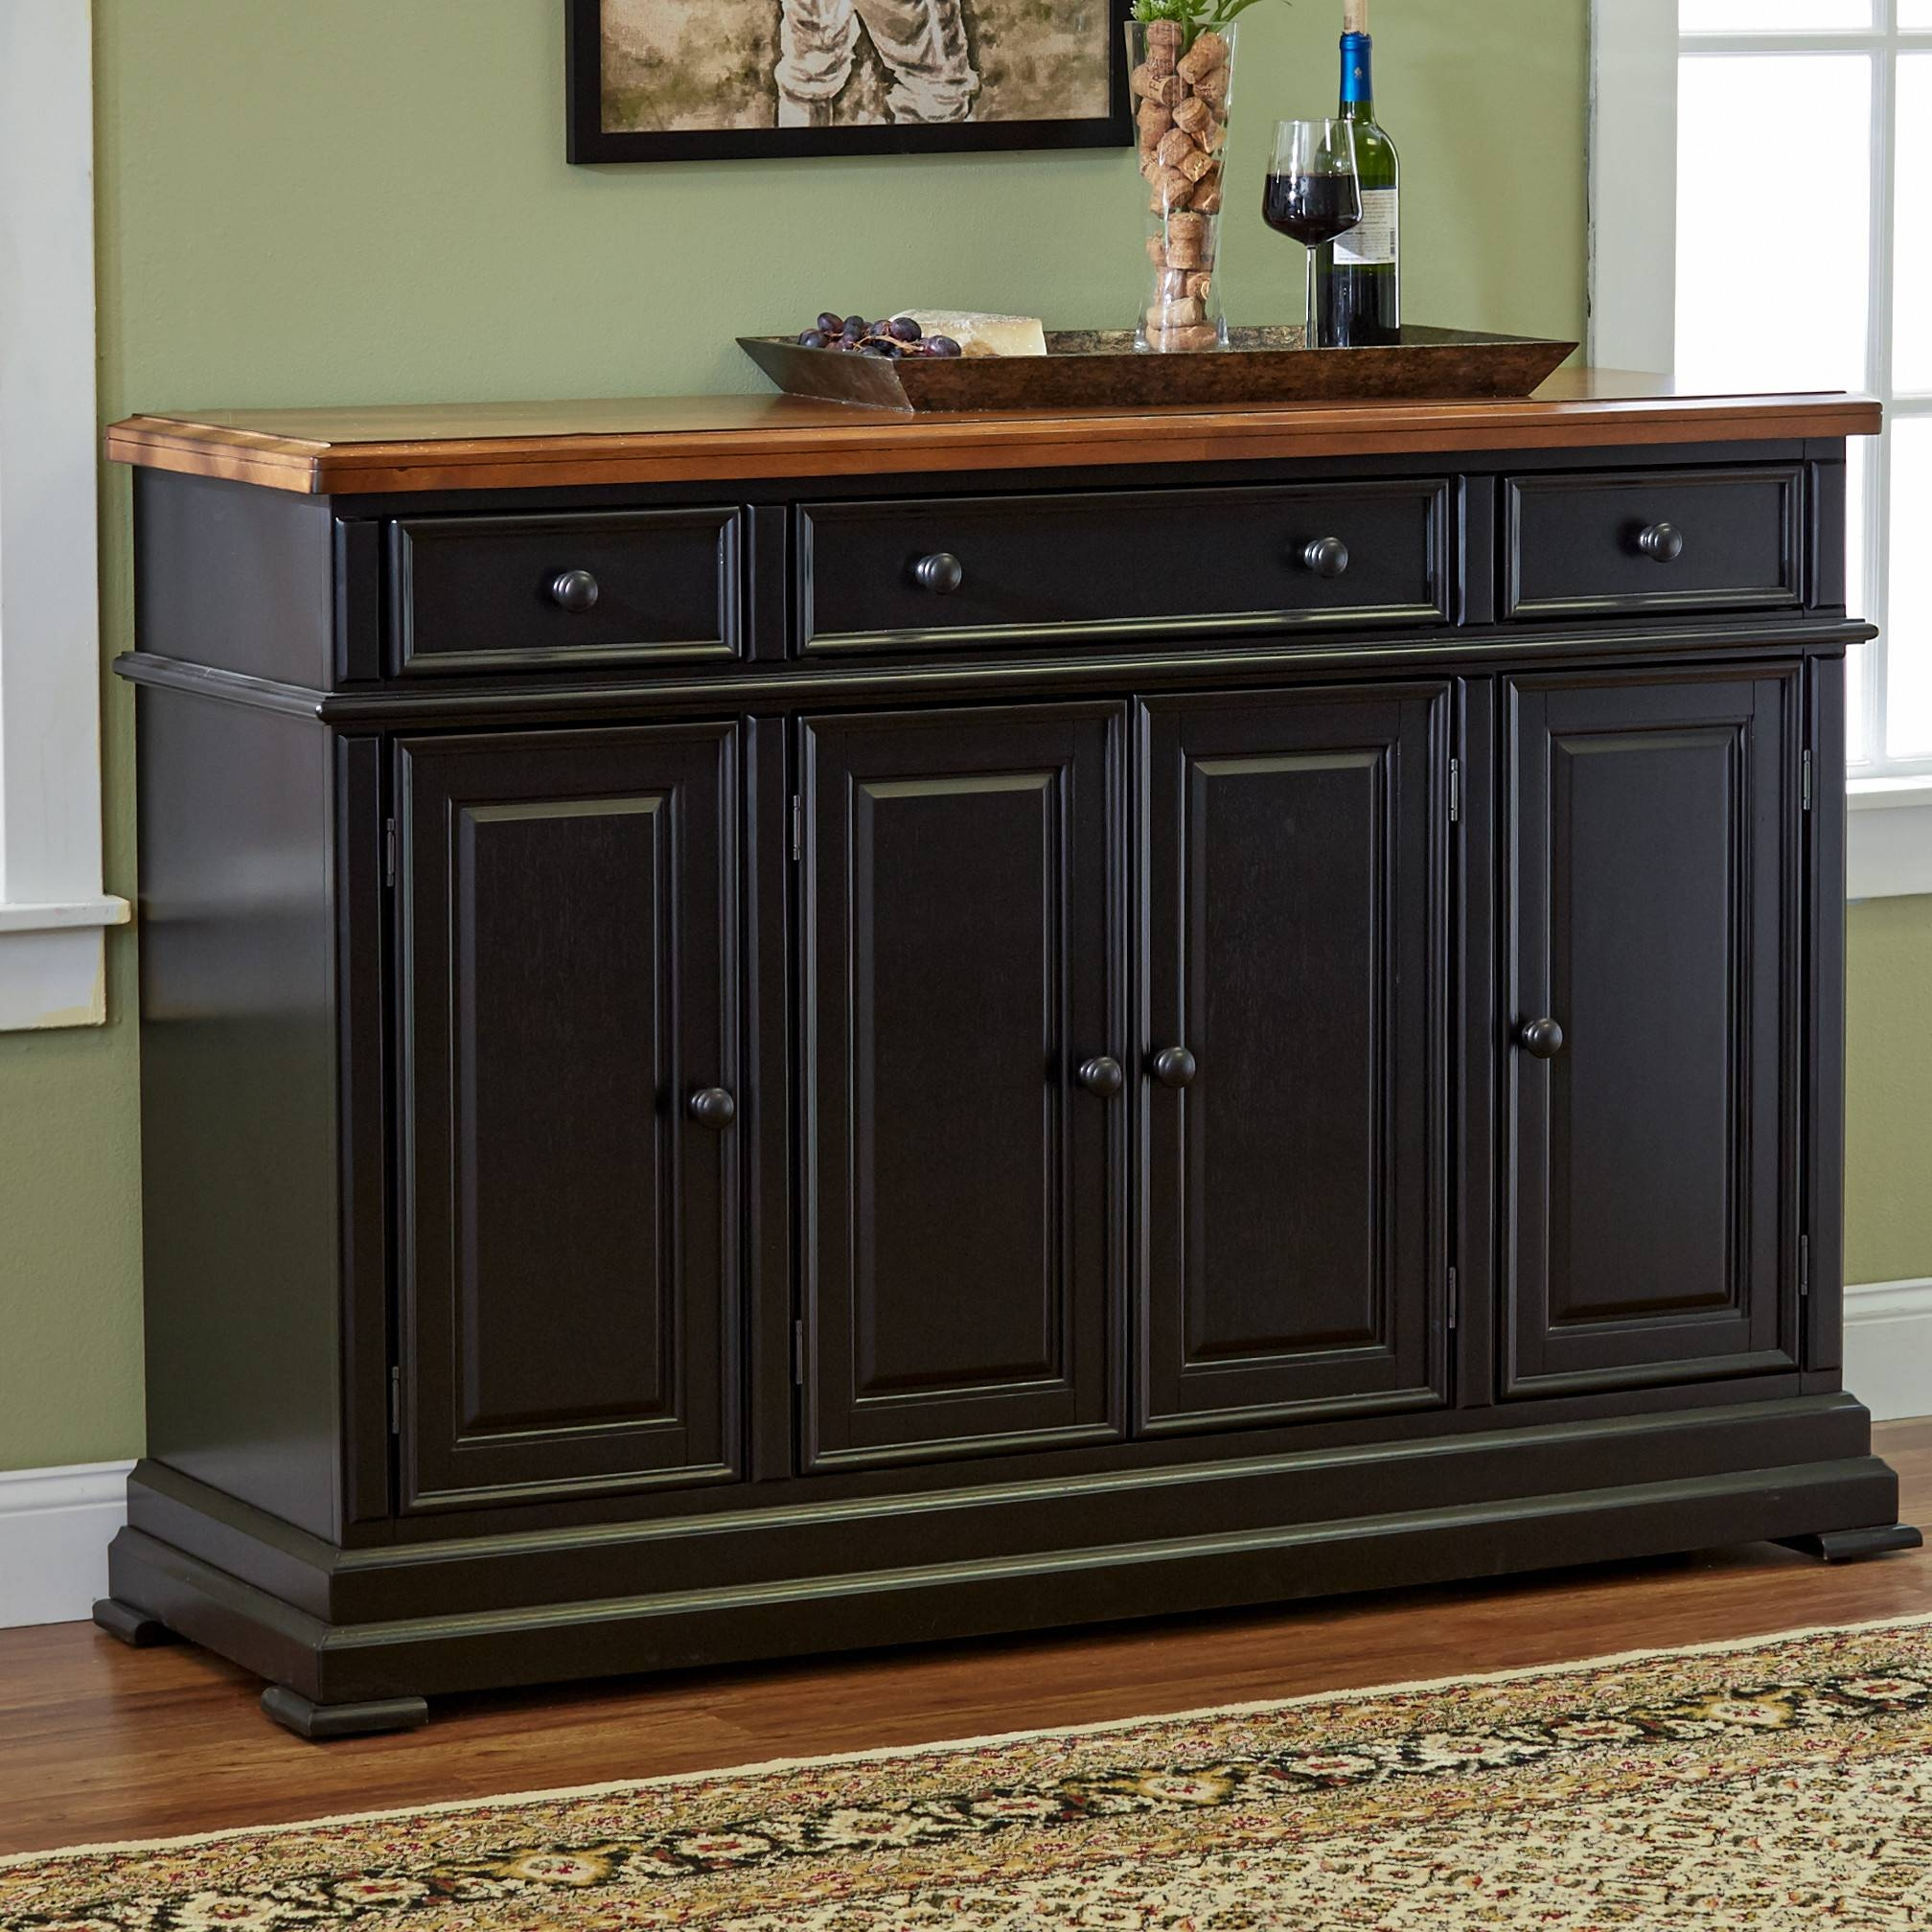 Furniture: Vivacious Kitchen Hutch Cabinets With Terrific Elegant Regarding Elegant Black Sideboards And Buffets (#6 of 15)